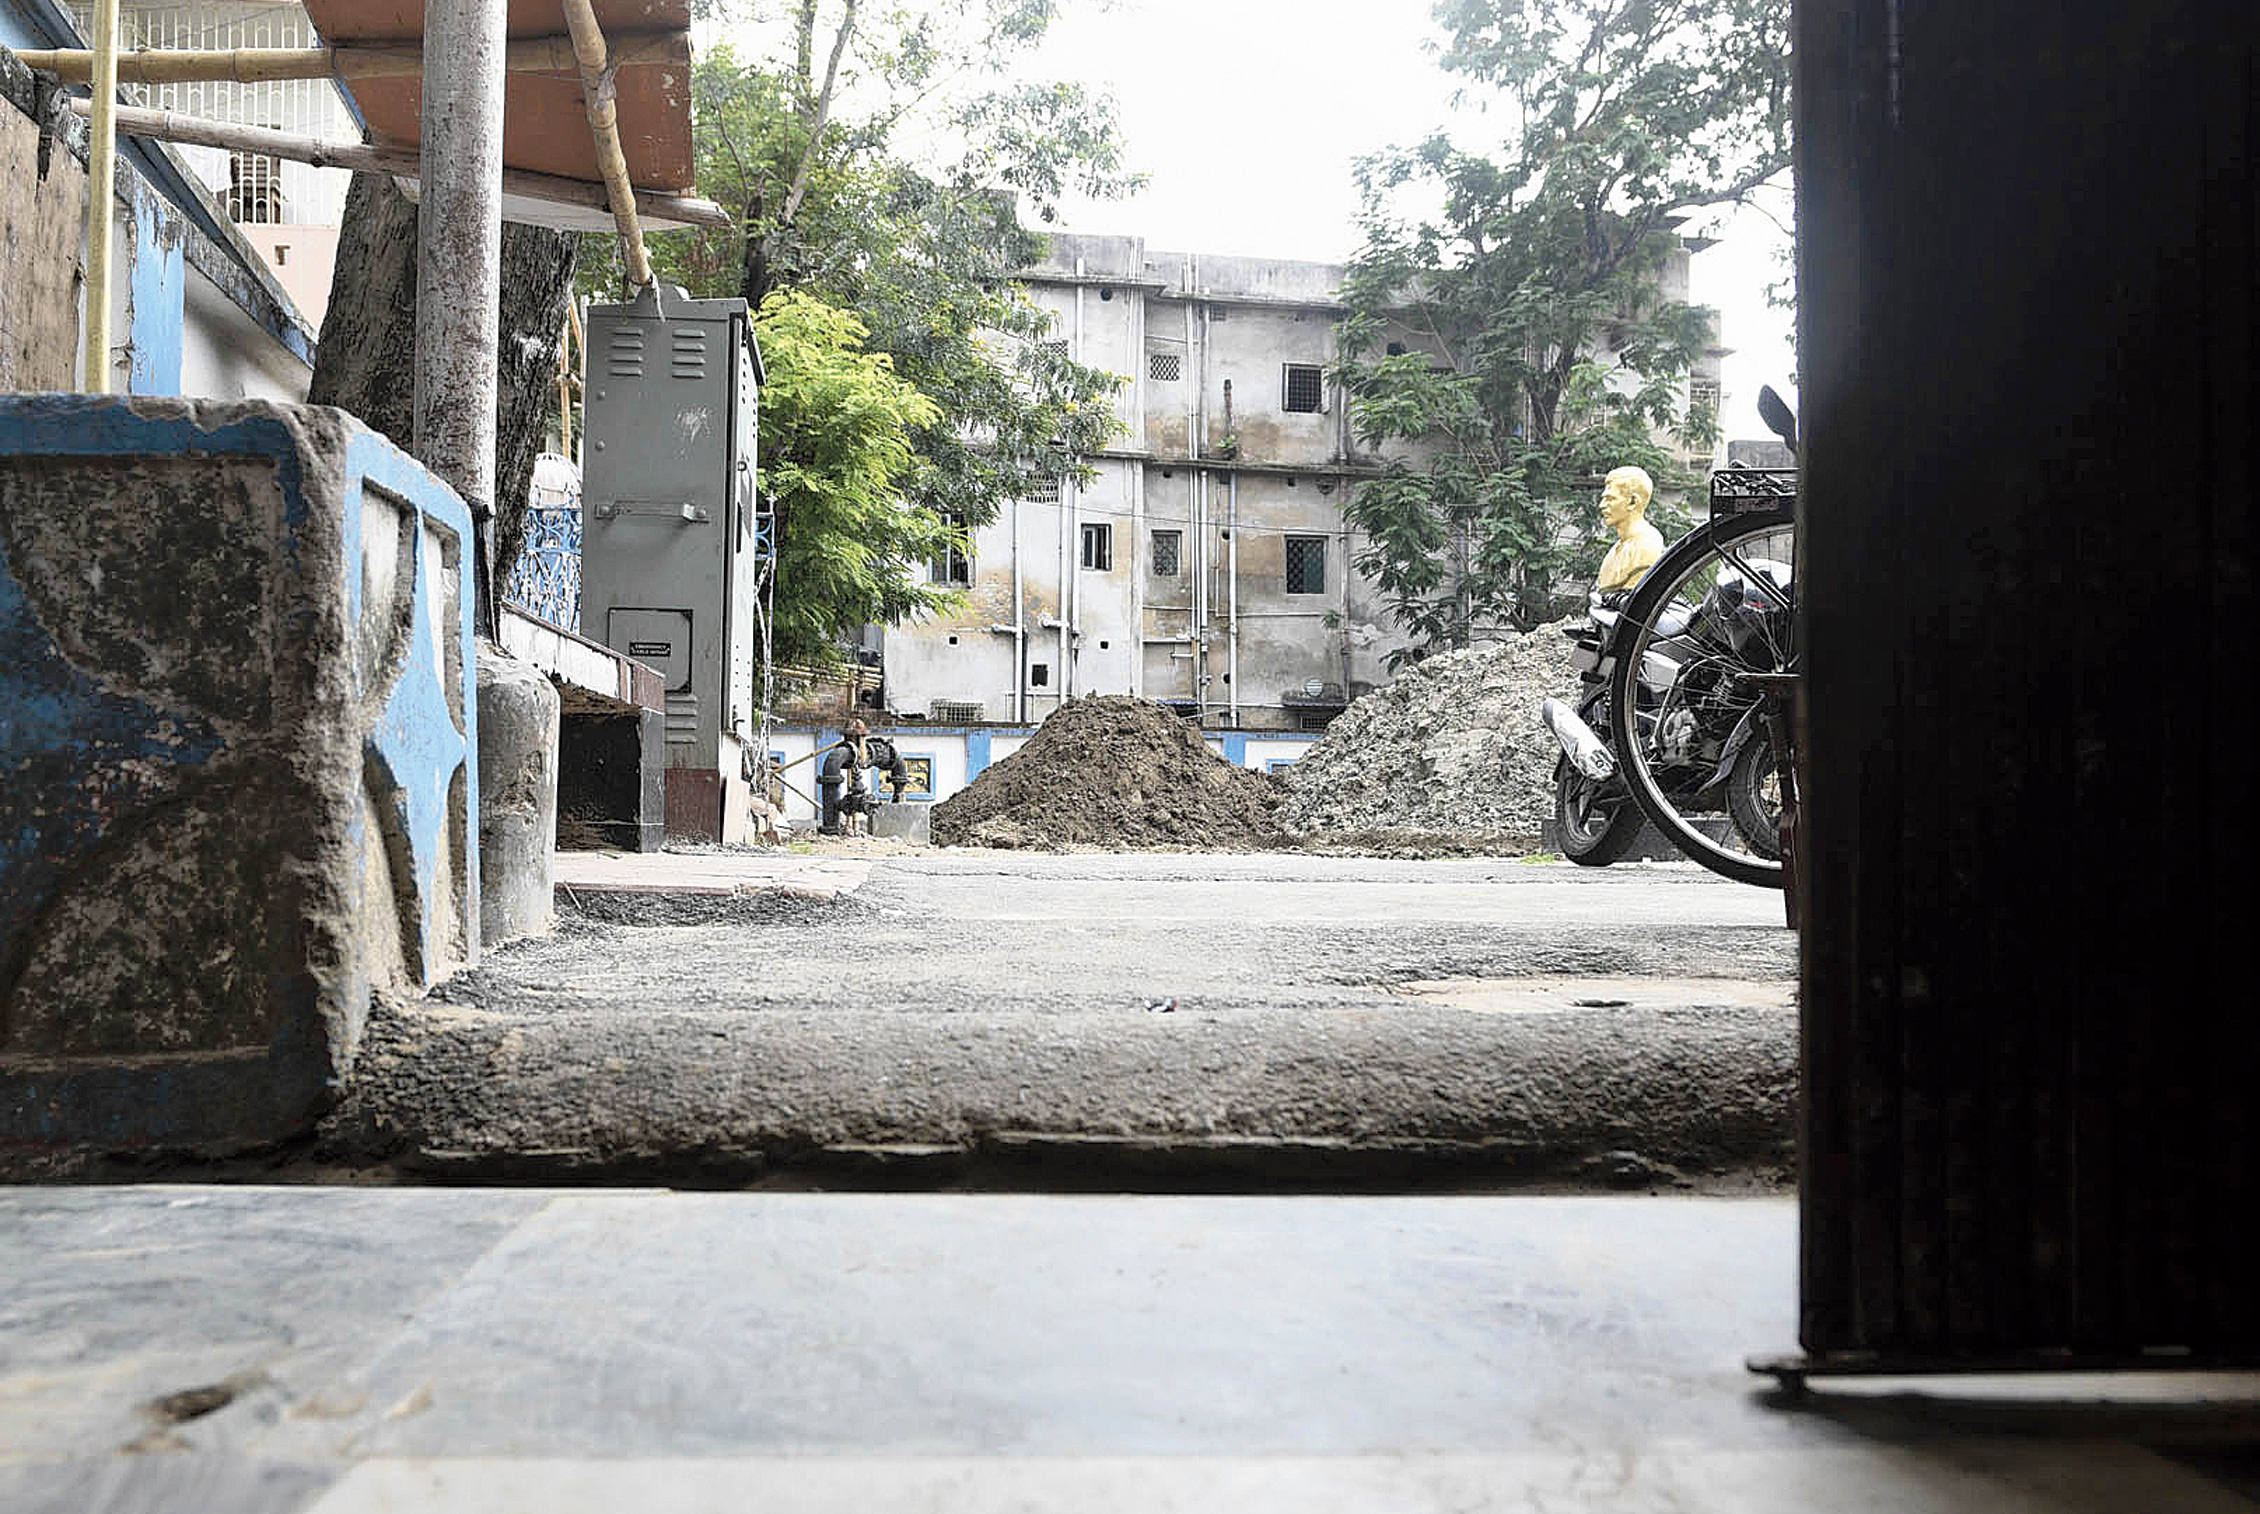 The view from the inside of a house in Dhakuria shows the level of the road is much higher than the house because of additional layers of bitumen